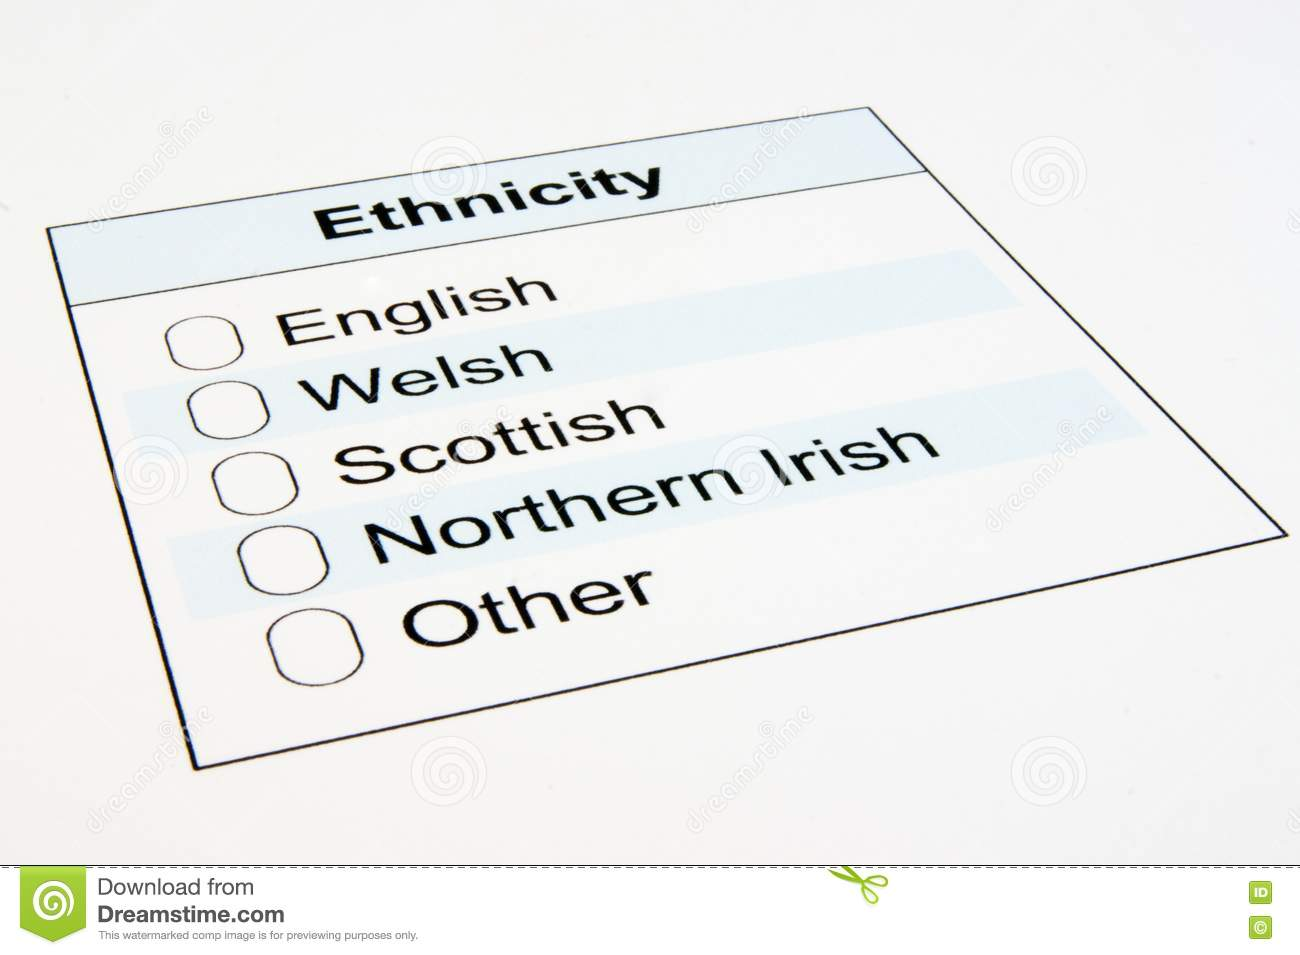 Uk ethnicity groups